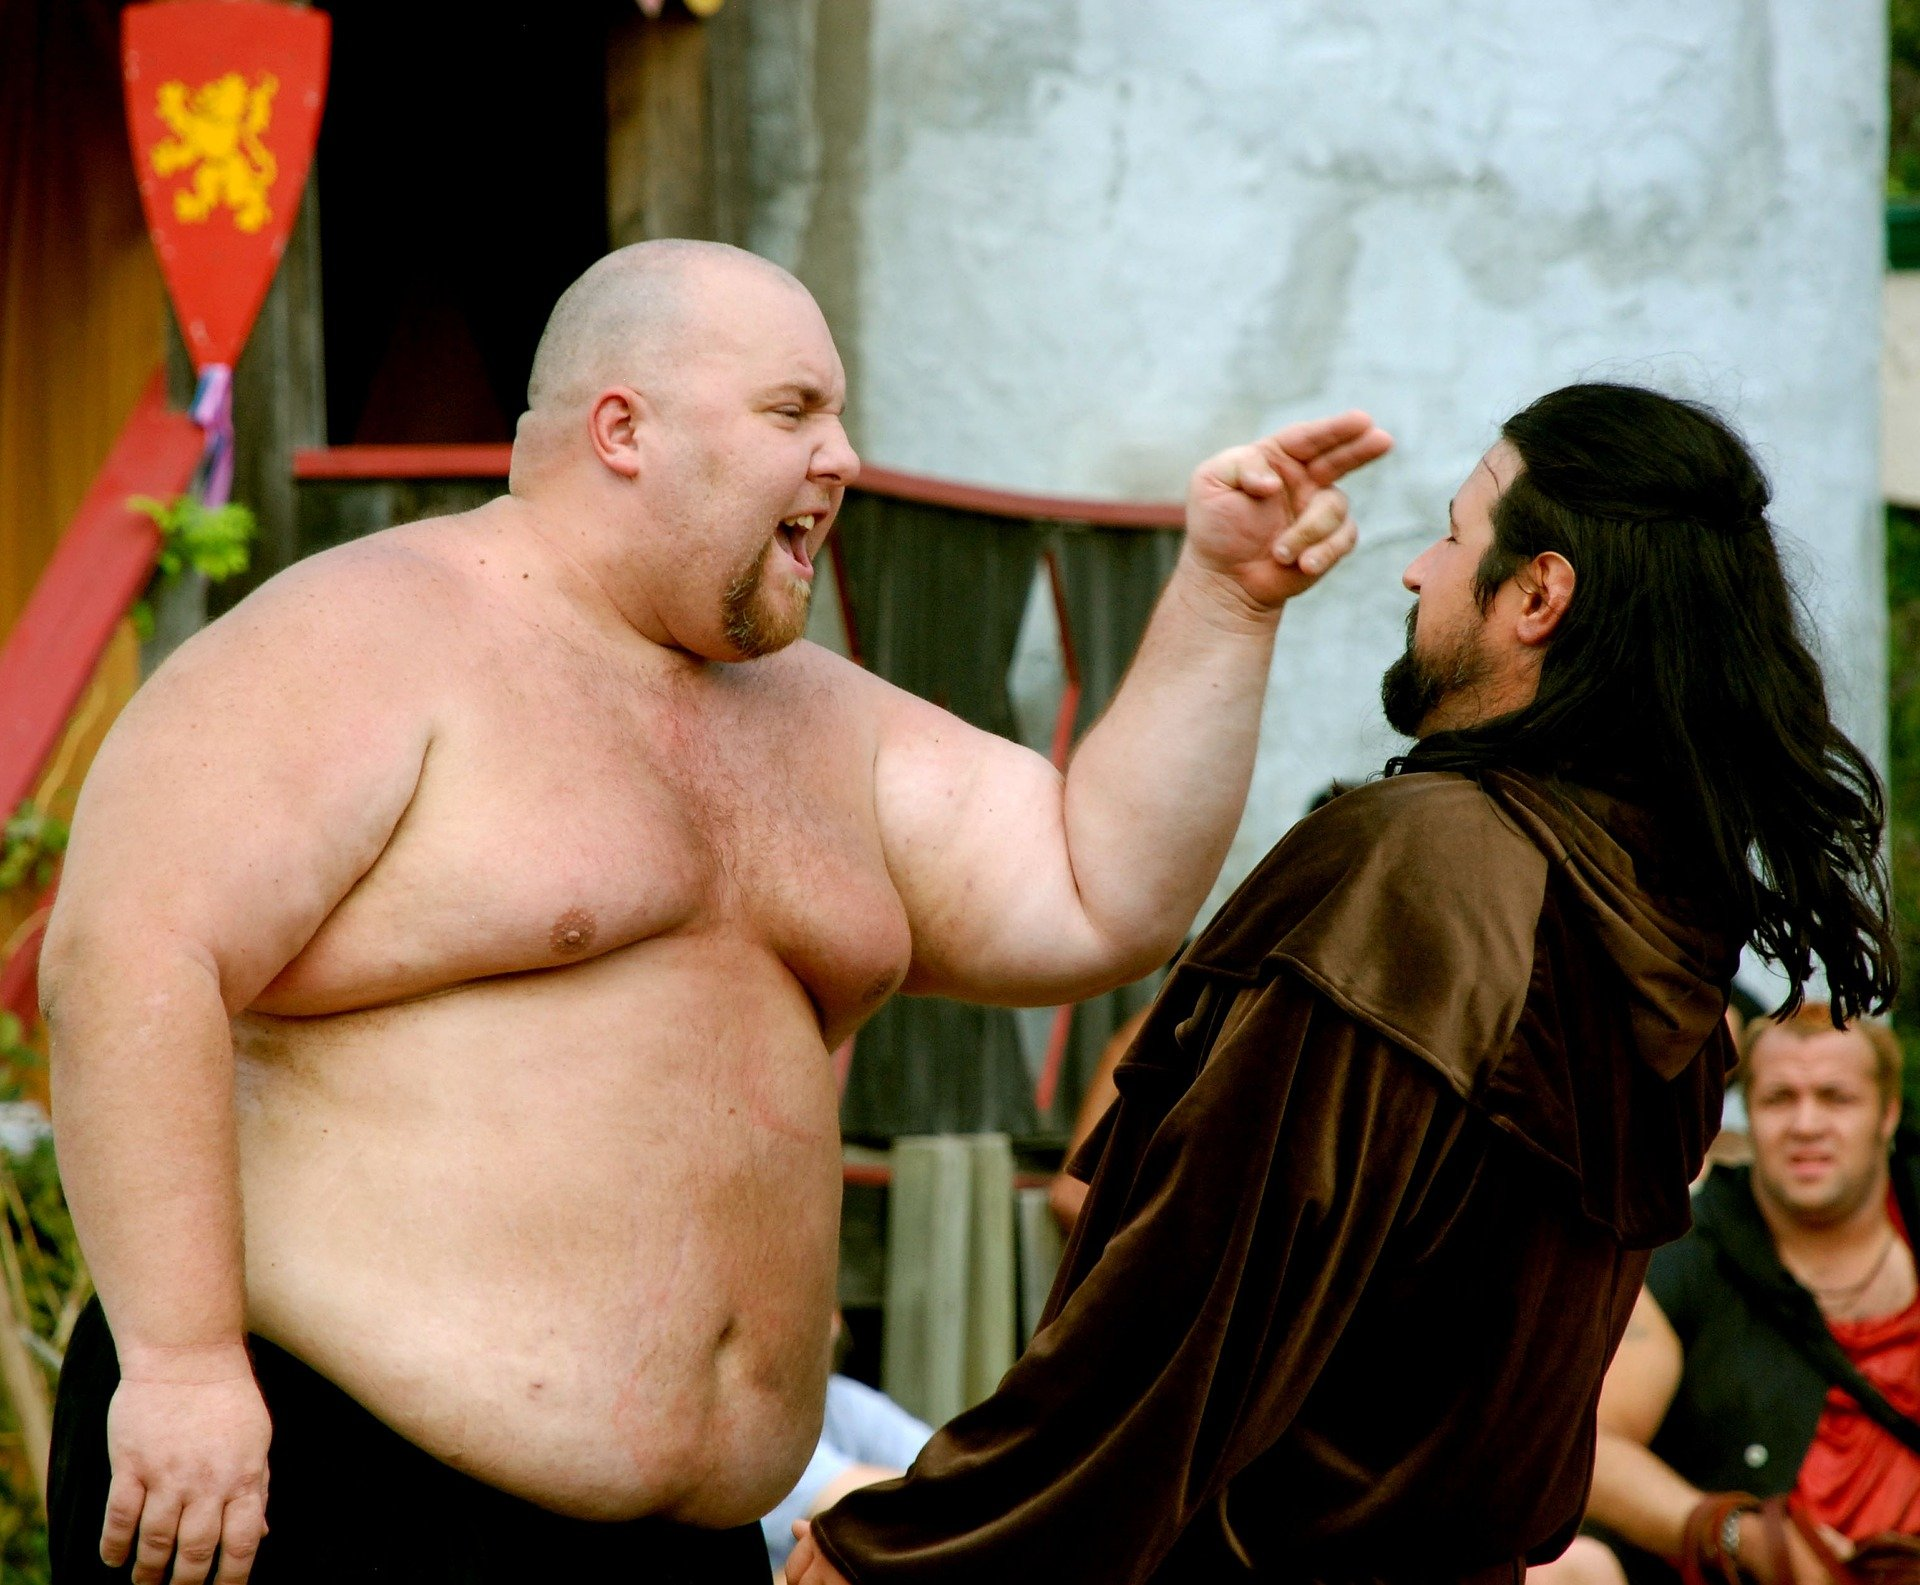 Shirtless overweight man in a confrontation with another man.   Source: Pixabay/William Adams